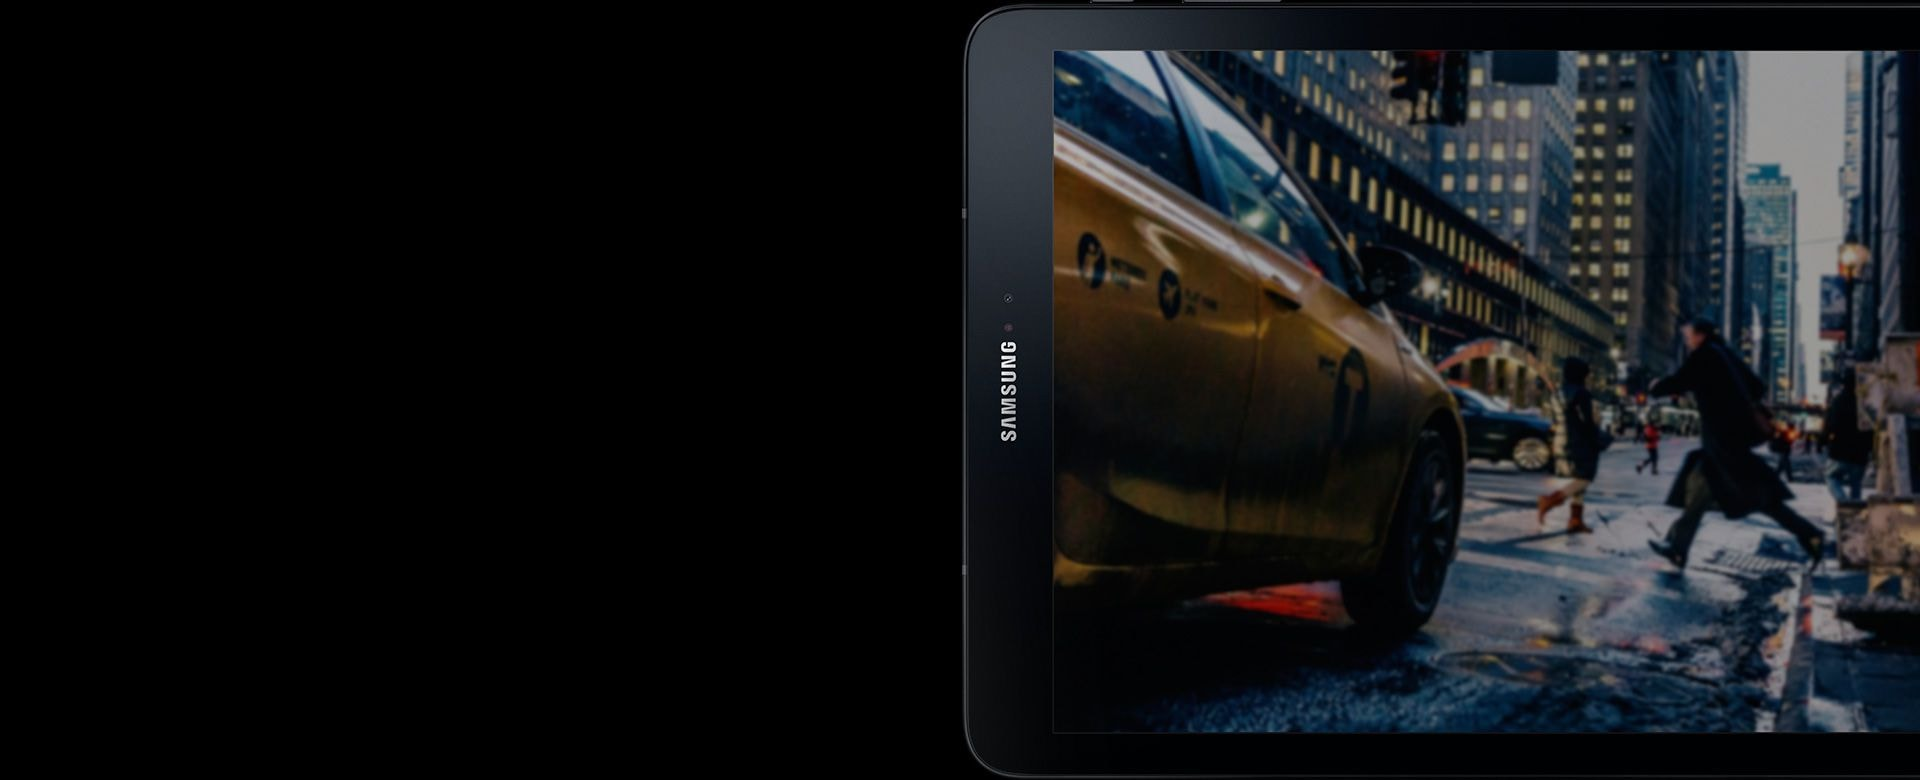 Galaxy Tab S3 standing sideways with image of a yellow cab downtown